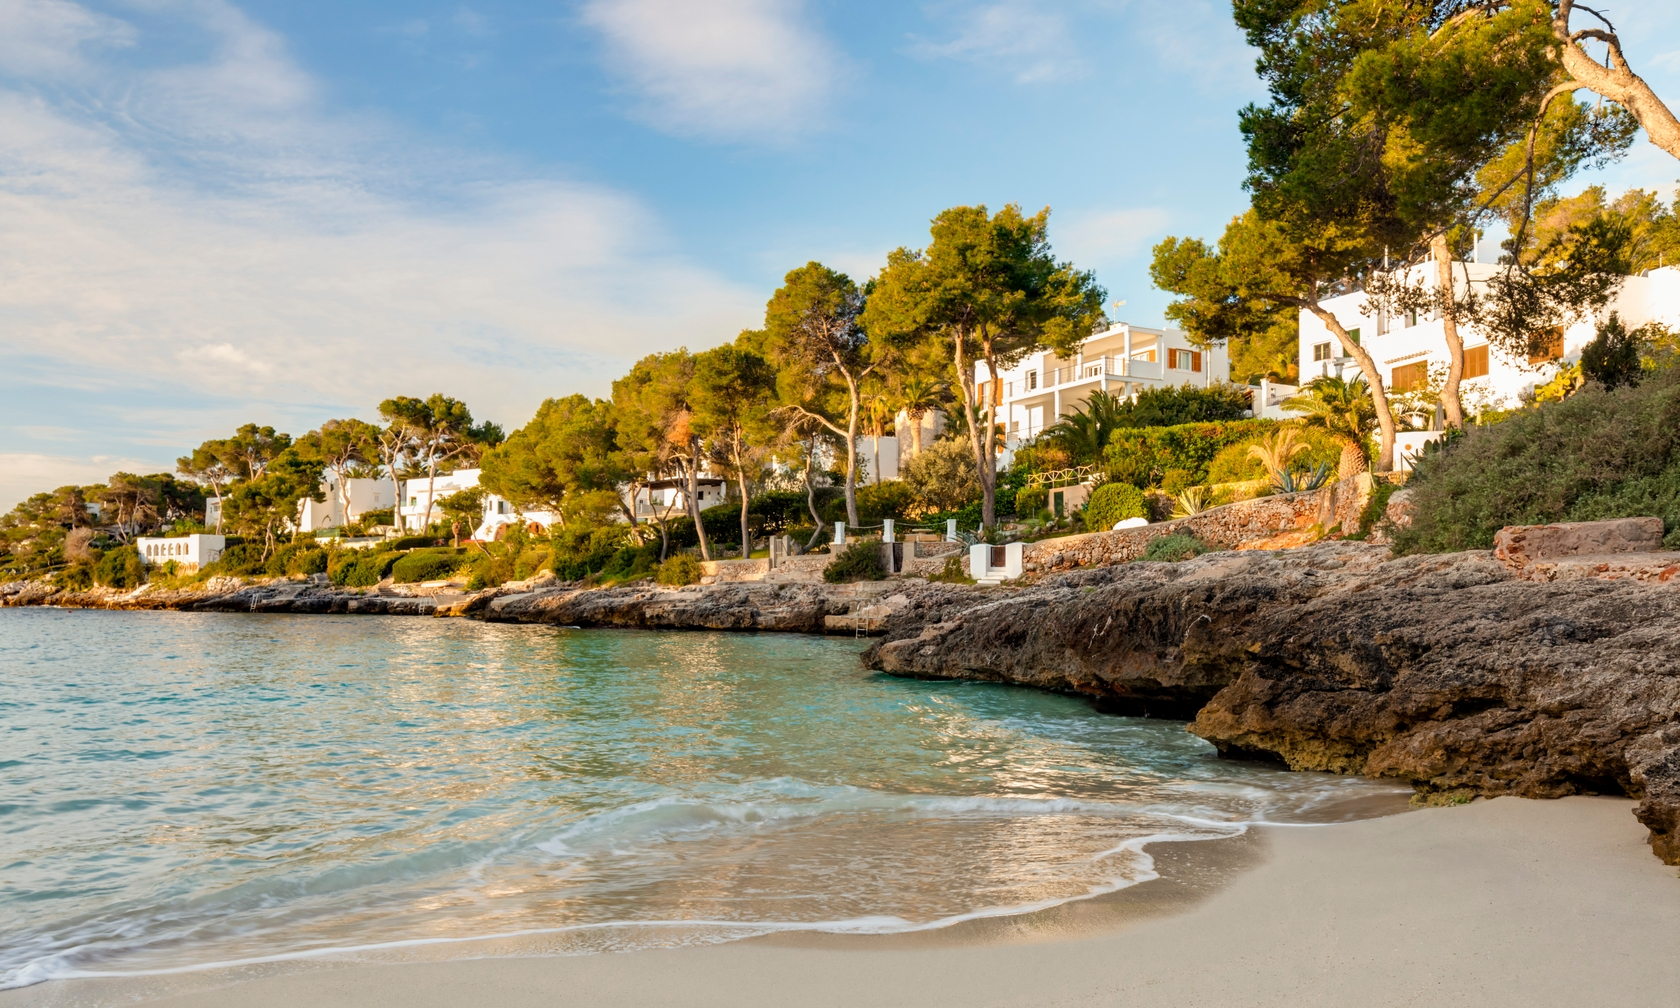 Holiday rentals in Cala d'Or